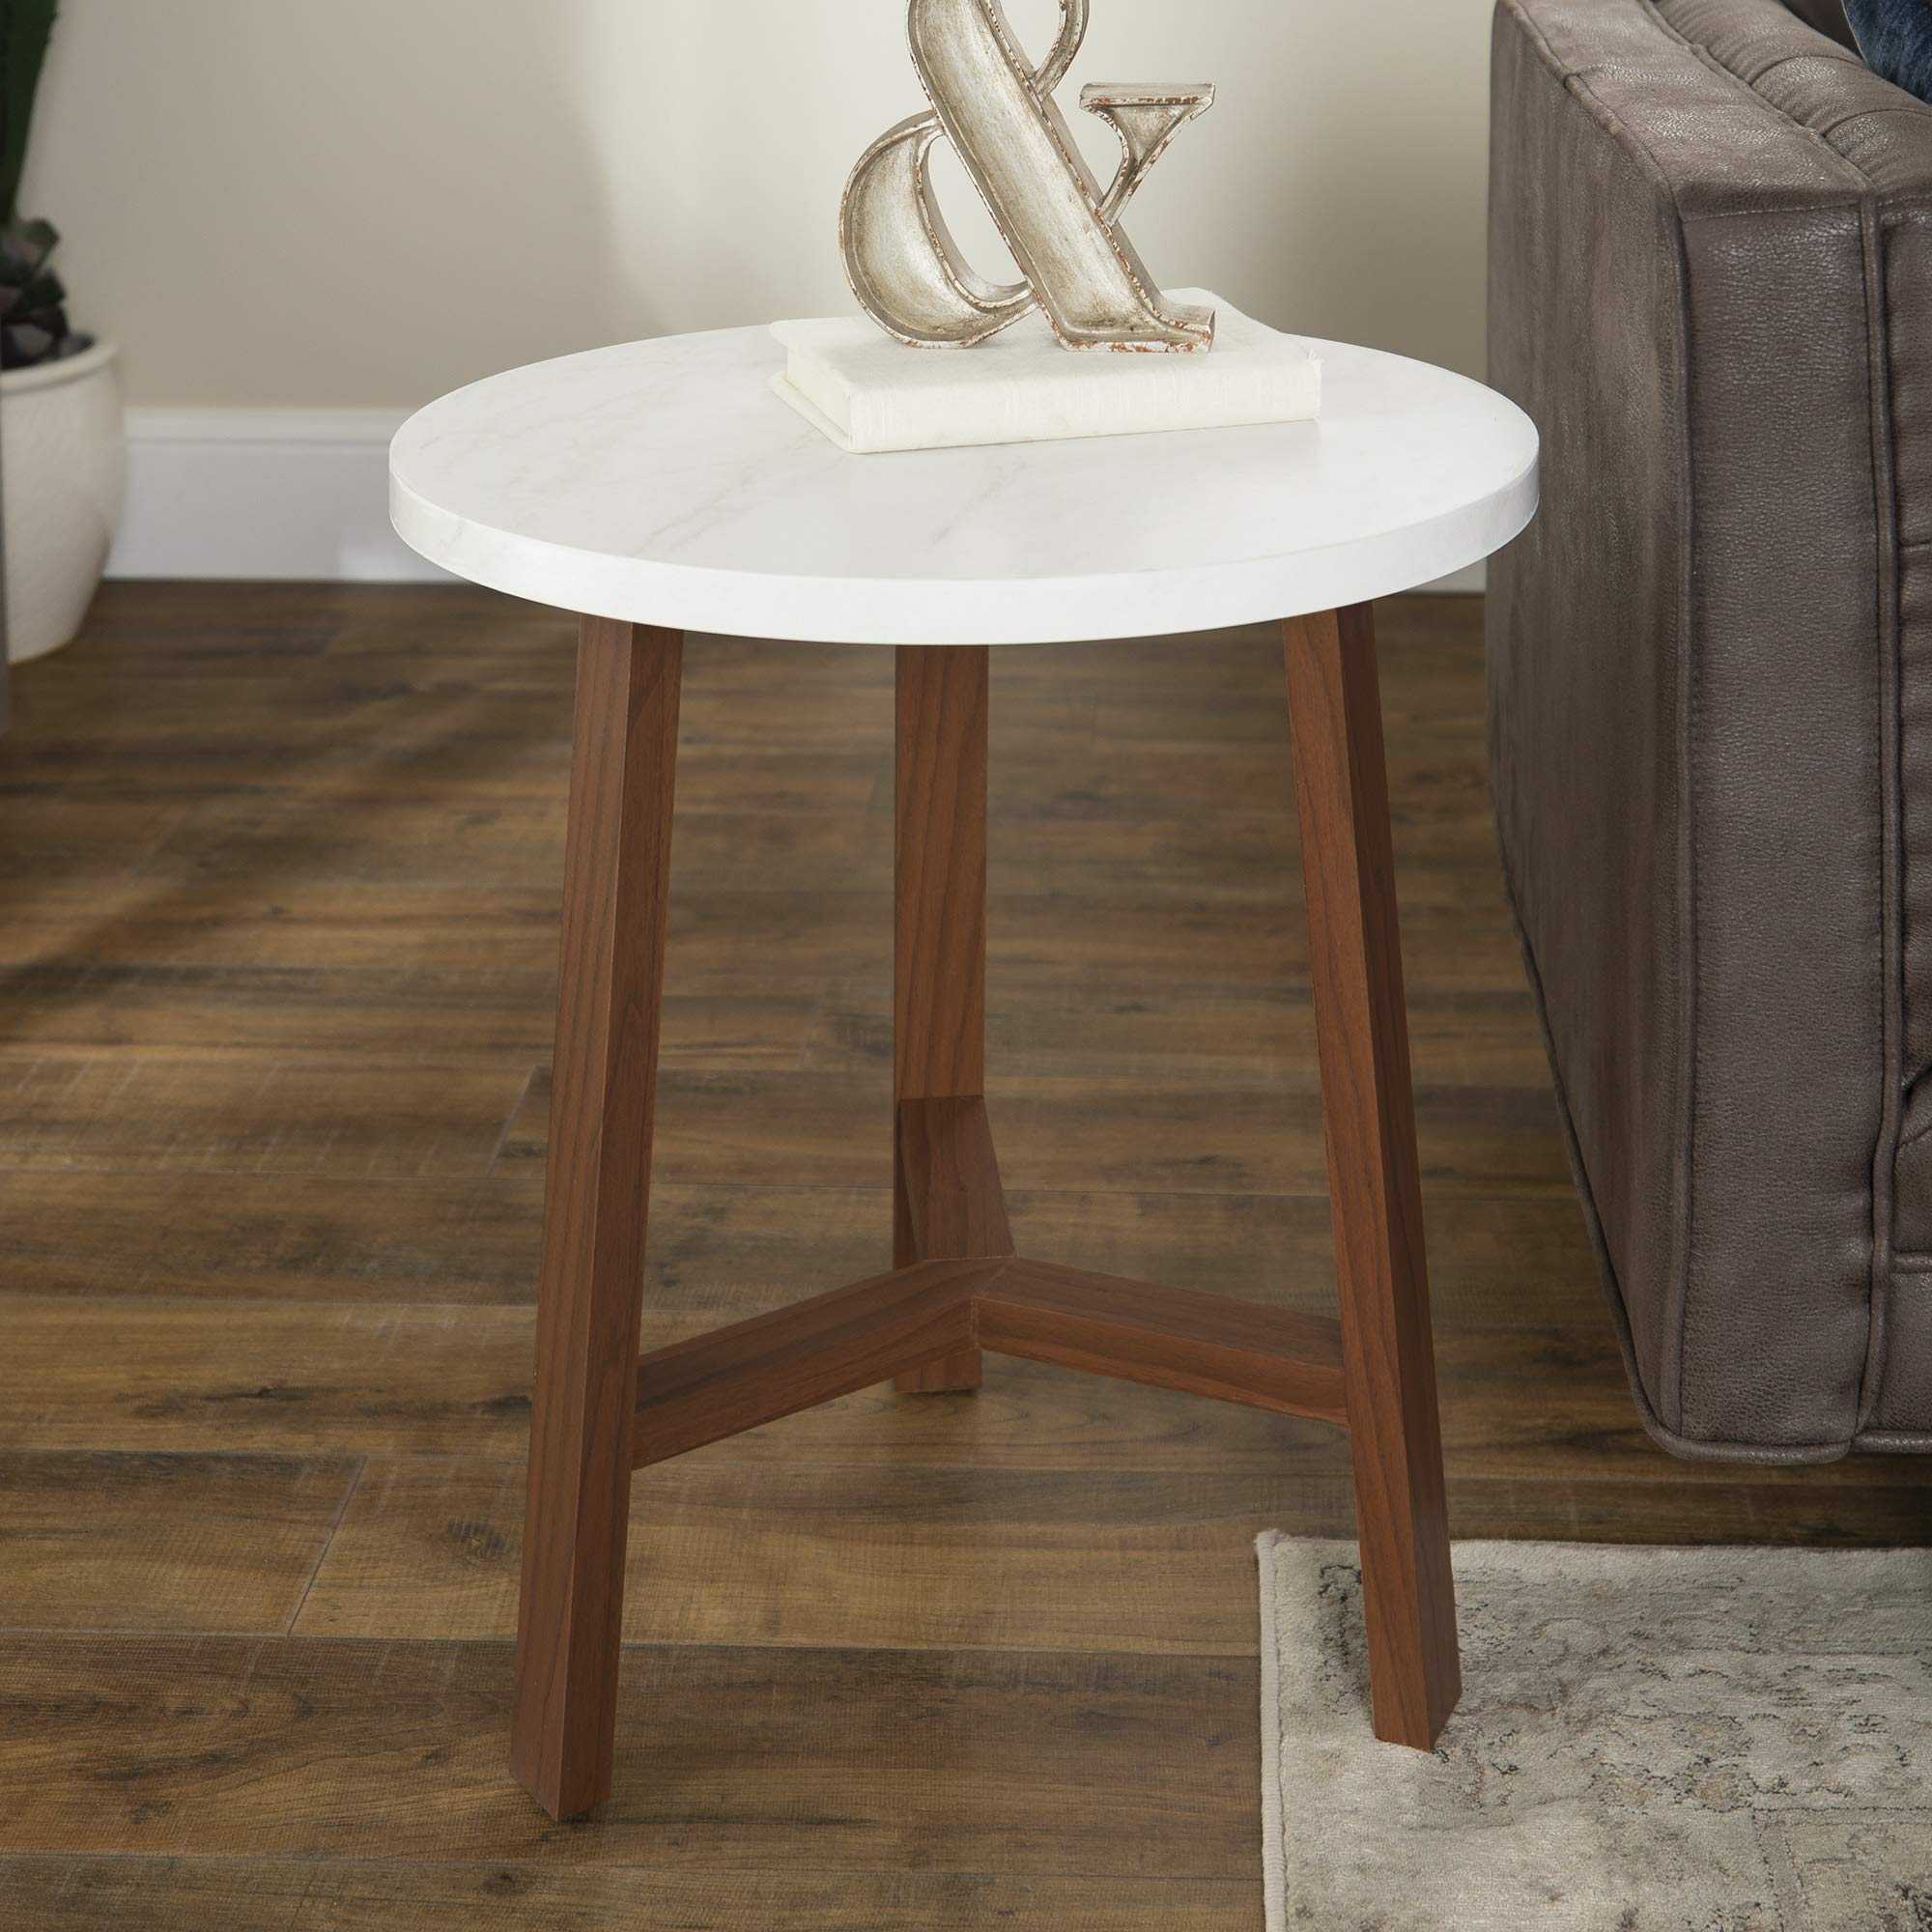 WE Furniture Mid-Century Modern Side End Table for Living Room, 20'', White Faux Marble with Acorn Base by WE Furniture